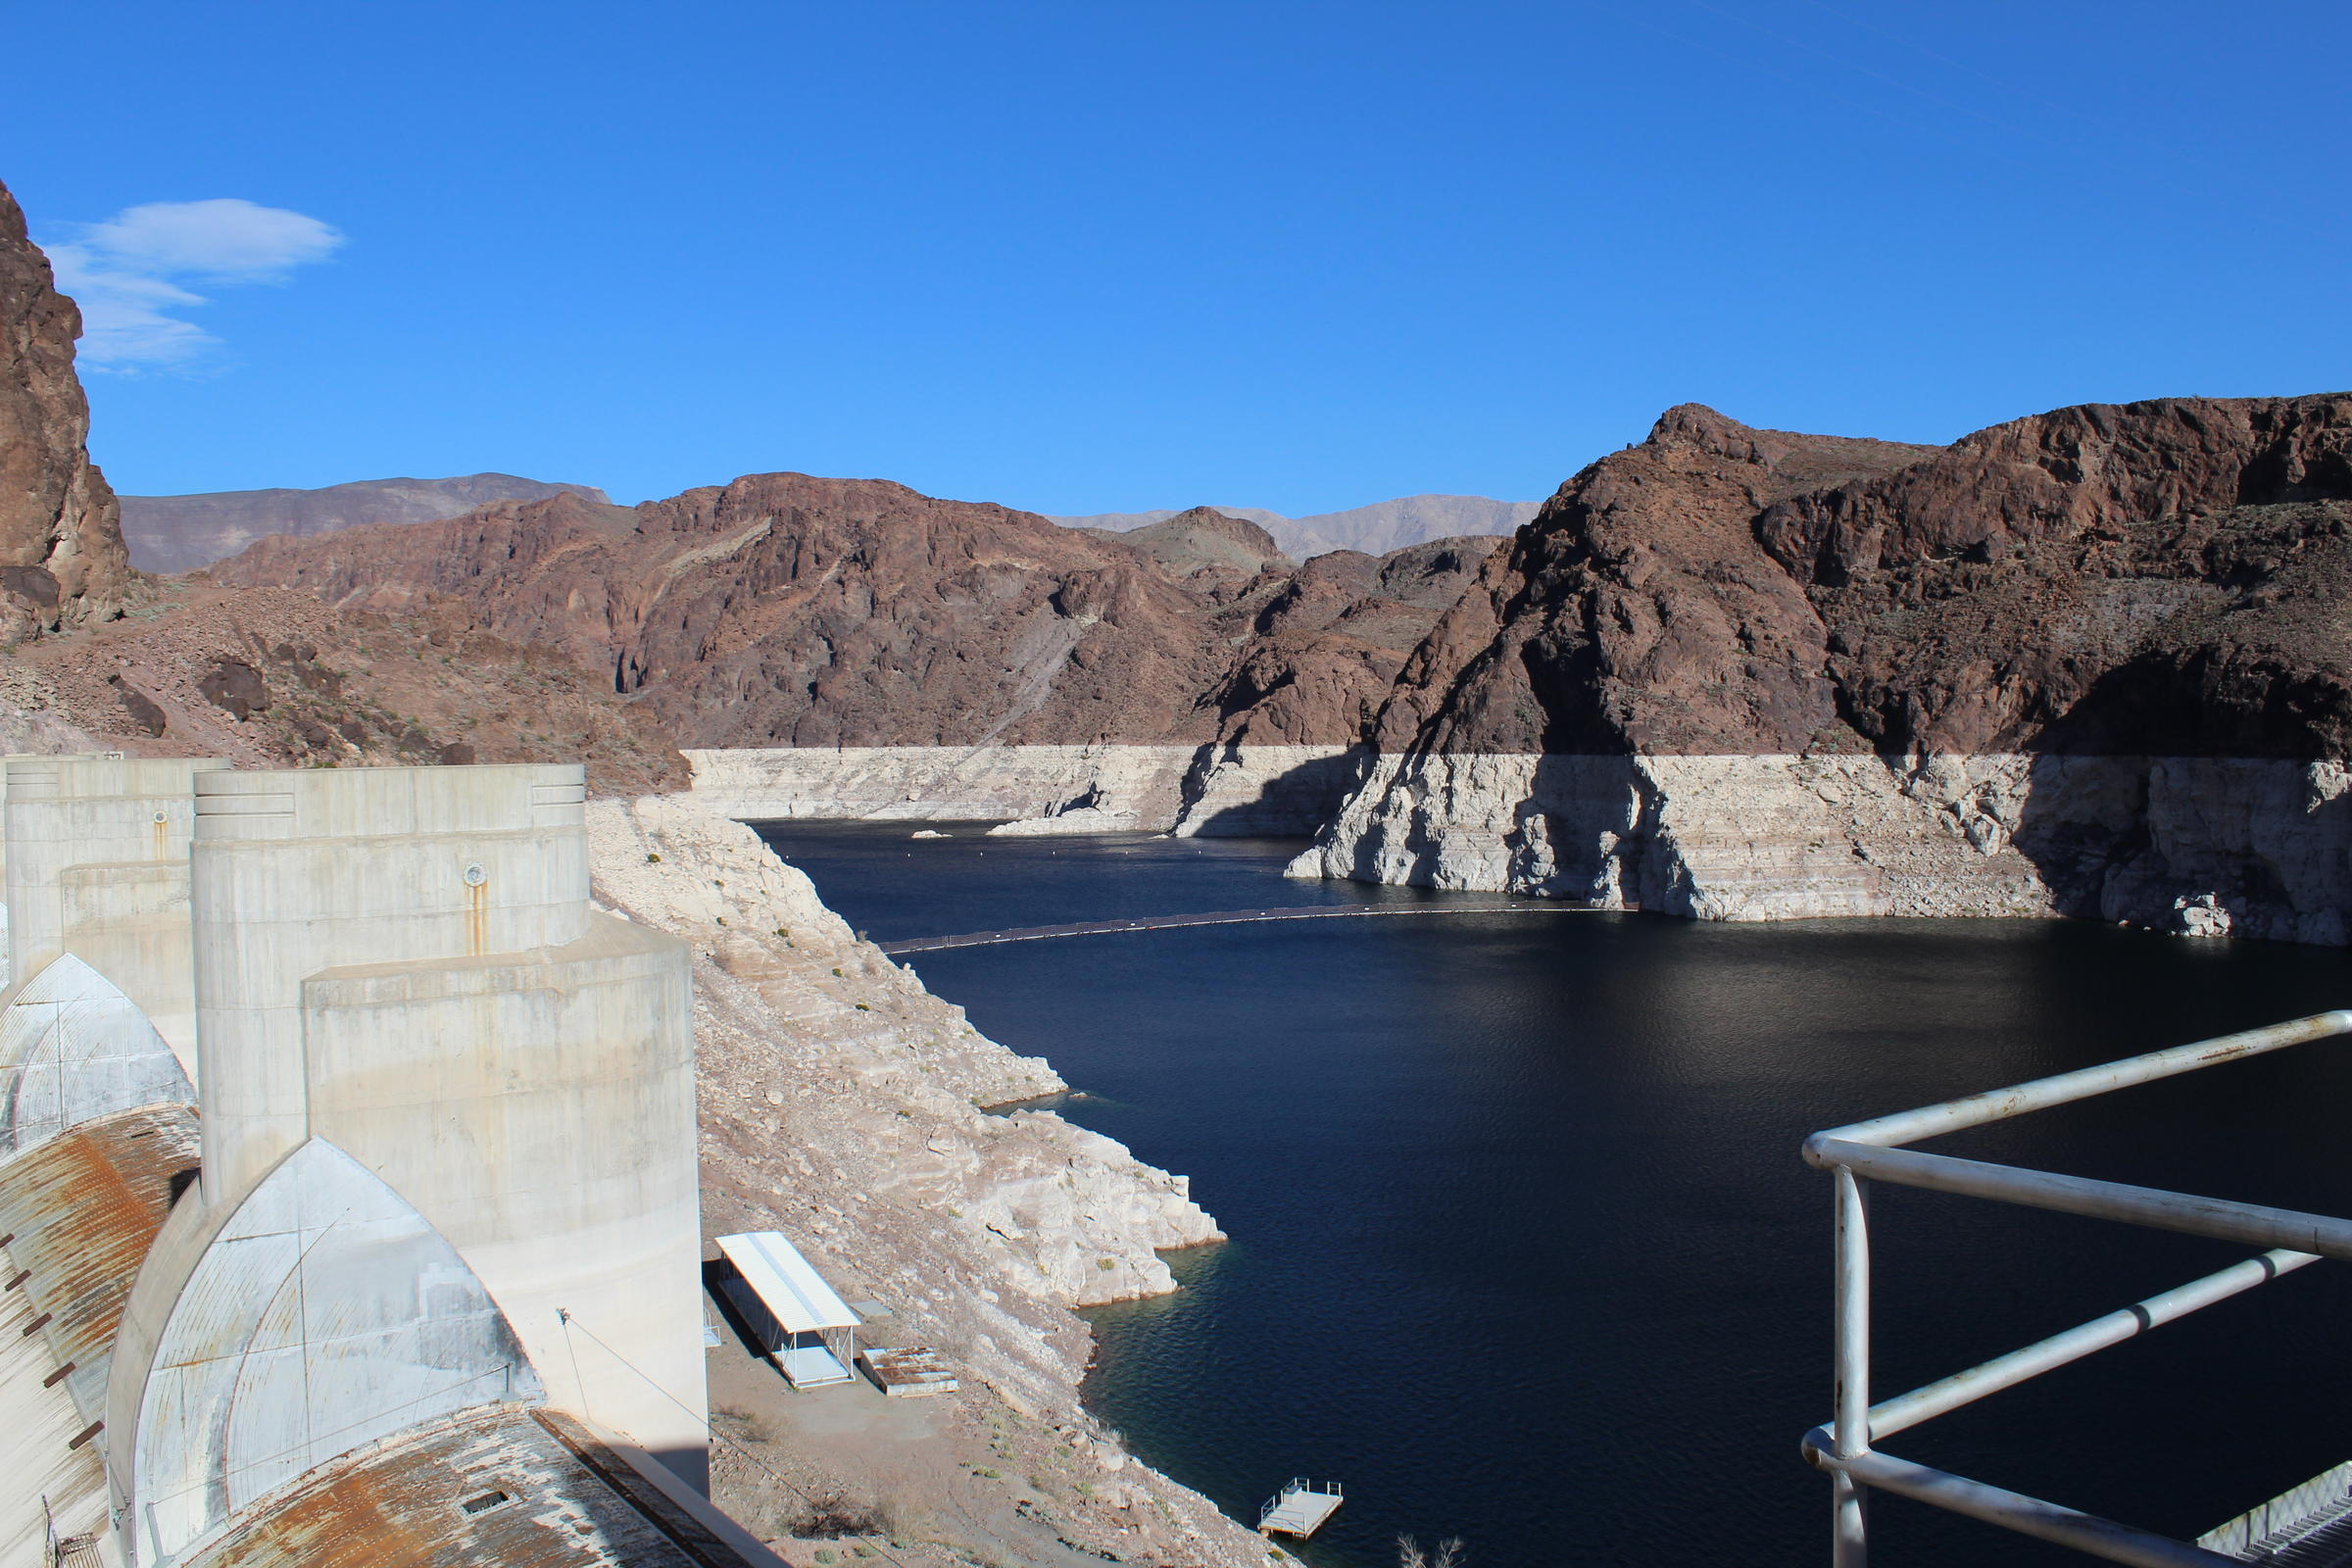 as water shortage risk increases federal officials add pressure to